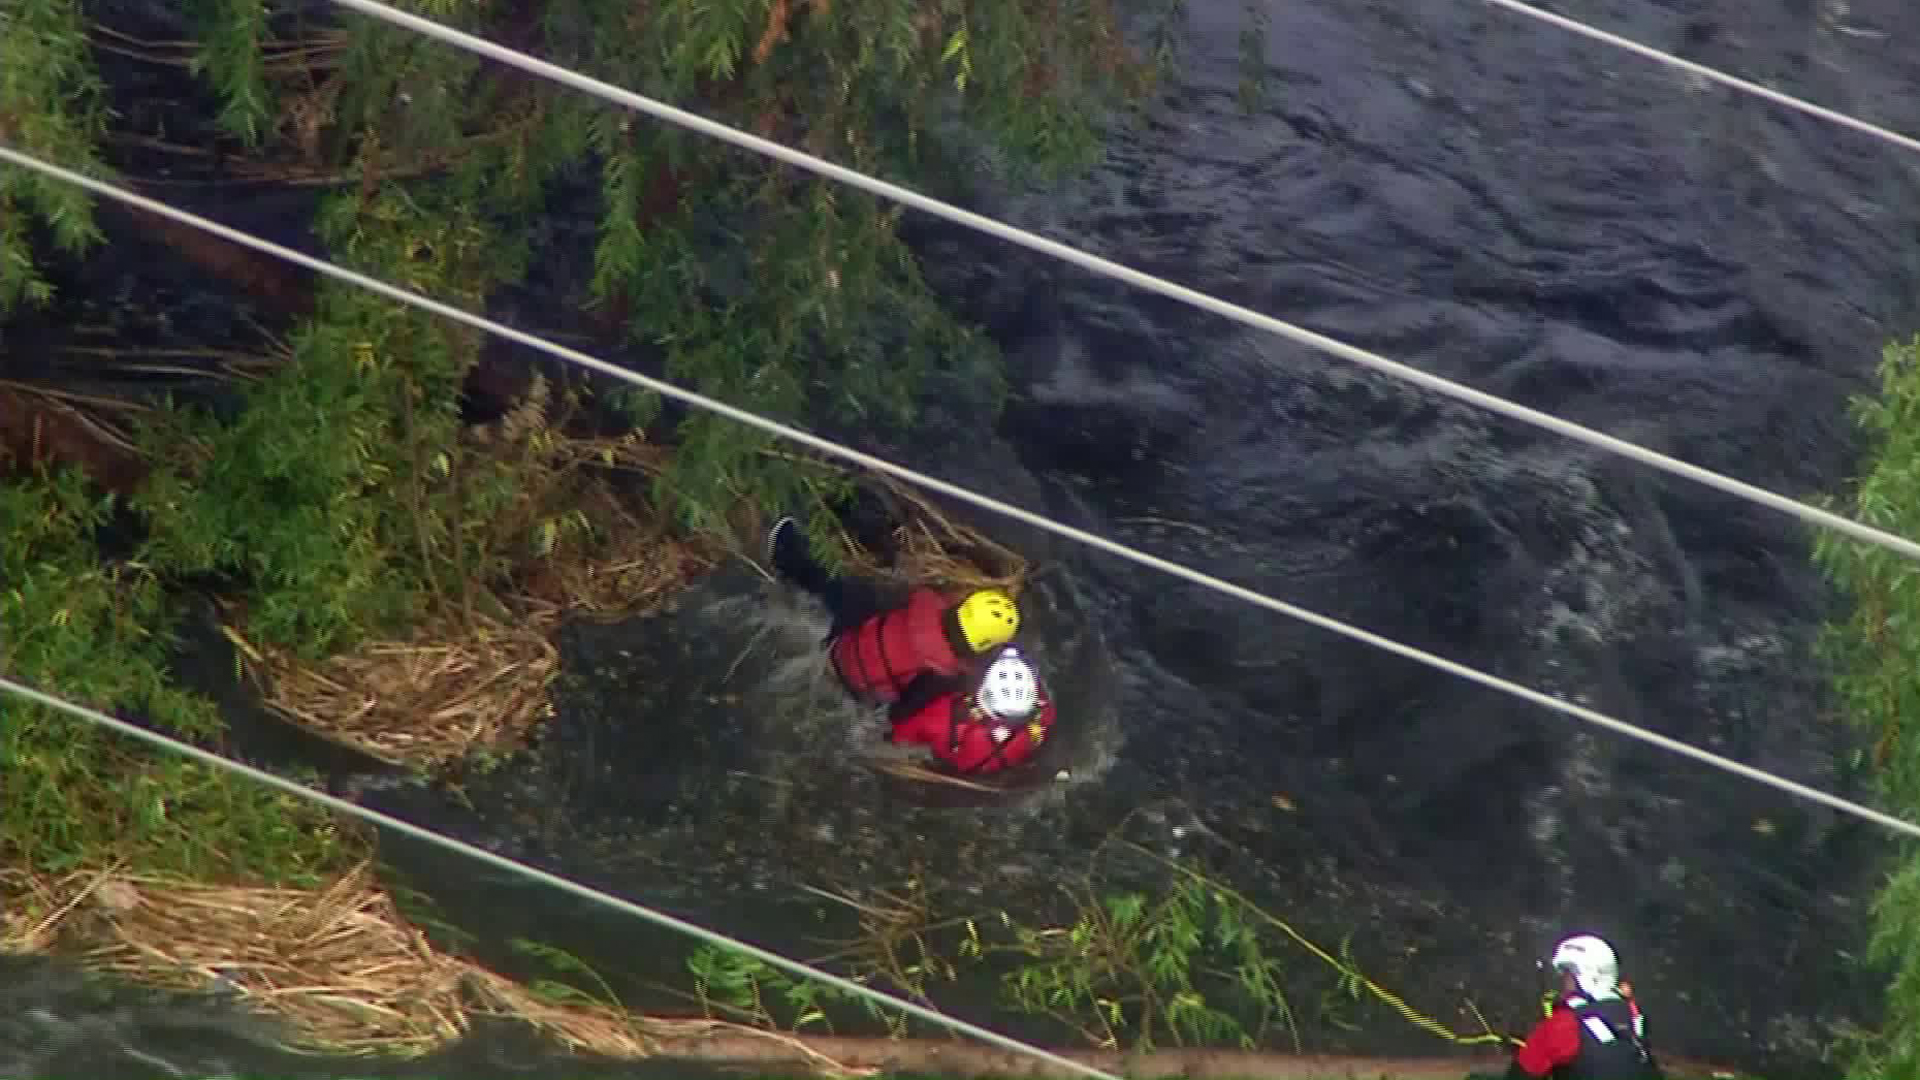 Firefighters rescue a man (in the yellow helmet) from the swollen Los Angeles River on Nov. 27, 2019. (Credit: KTLA)